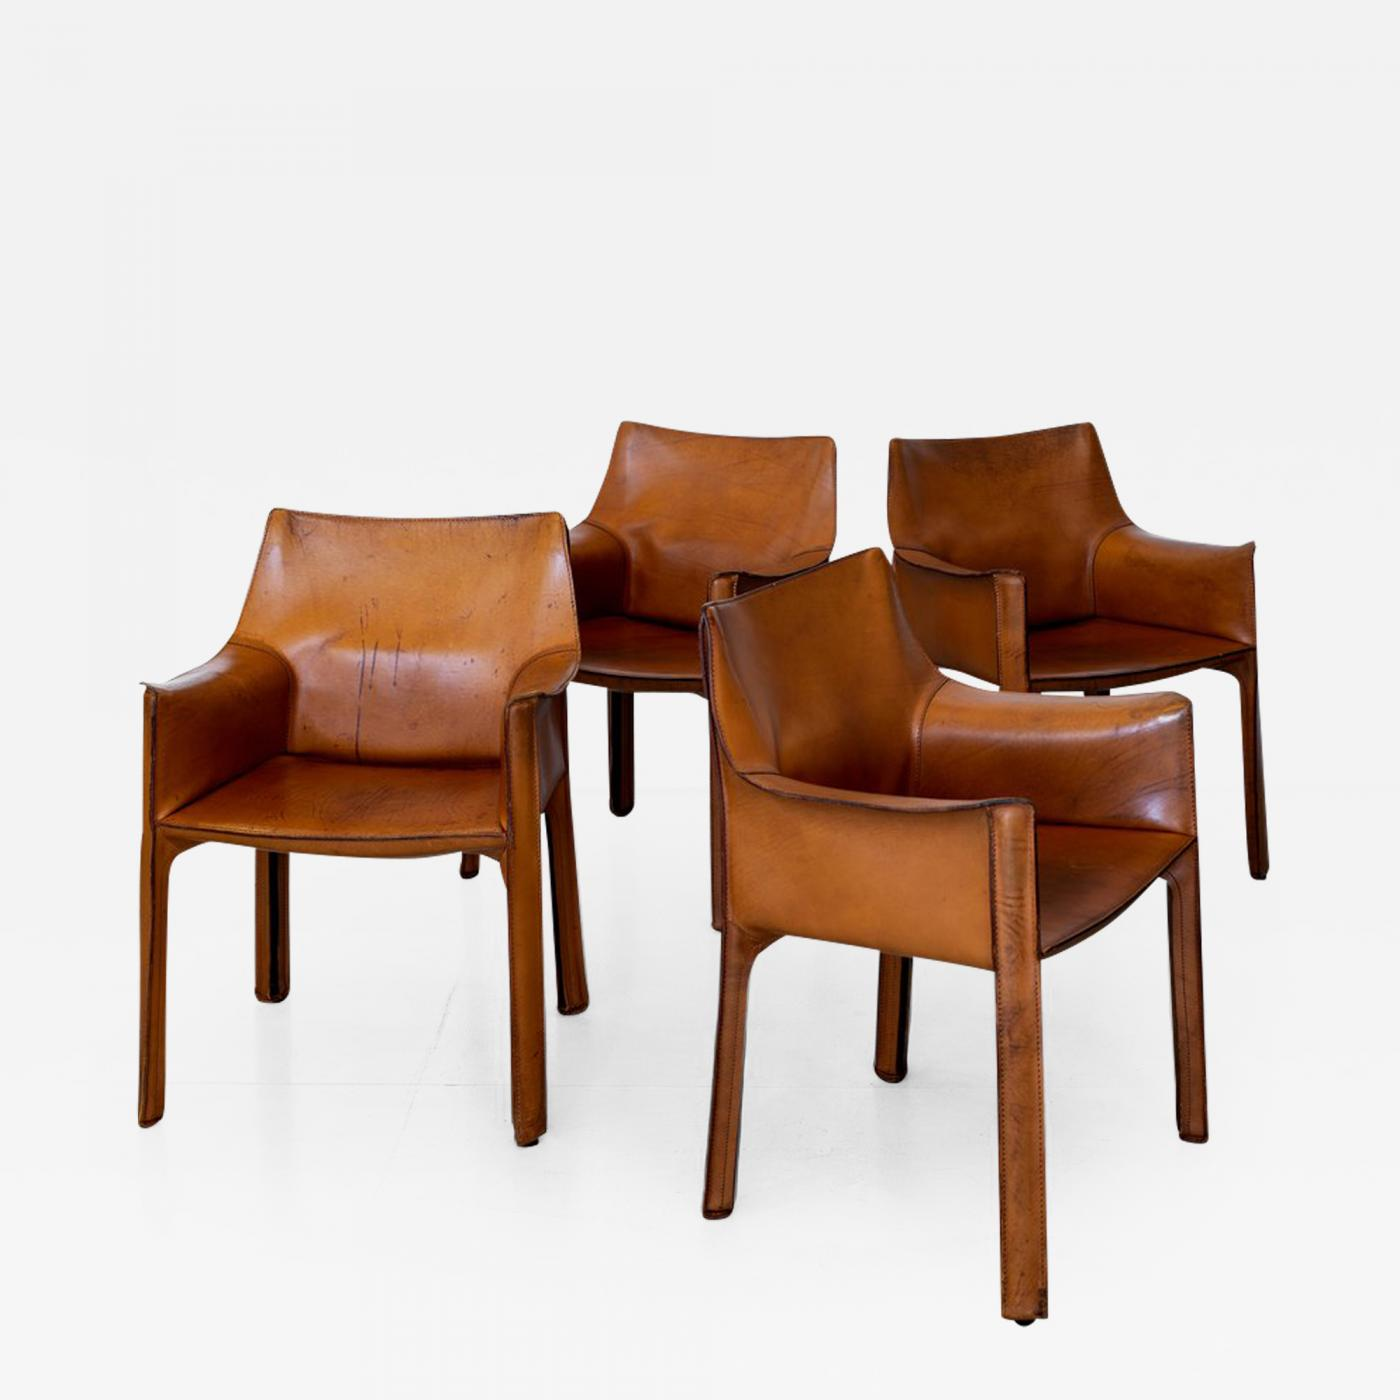 Super Mario Bellini Set Of 4 Bellini Cab Chairs Ocoug Best Dining Table And Chair Ideas Images Ocougorg